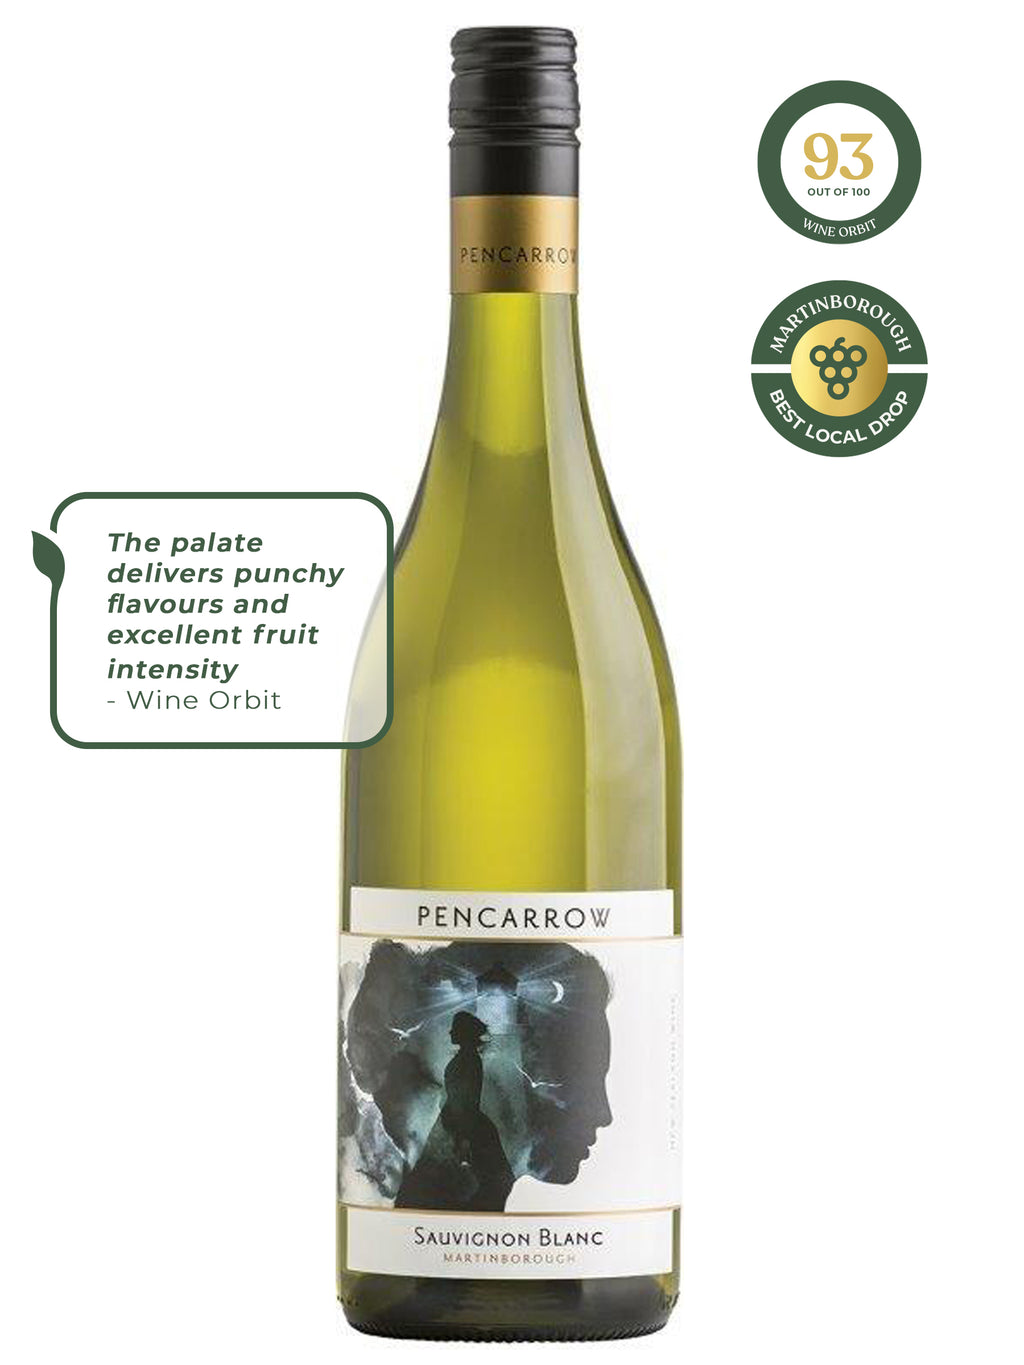 Pencarrow Sauvignon Blanc, Martinborough Sauvignon Blanc, New Zealand Sauvignon Blanc, New Zealand Wine, Online Wine Shop, New Zealand Wine Shop